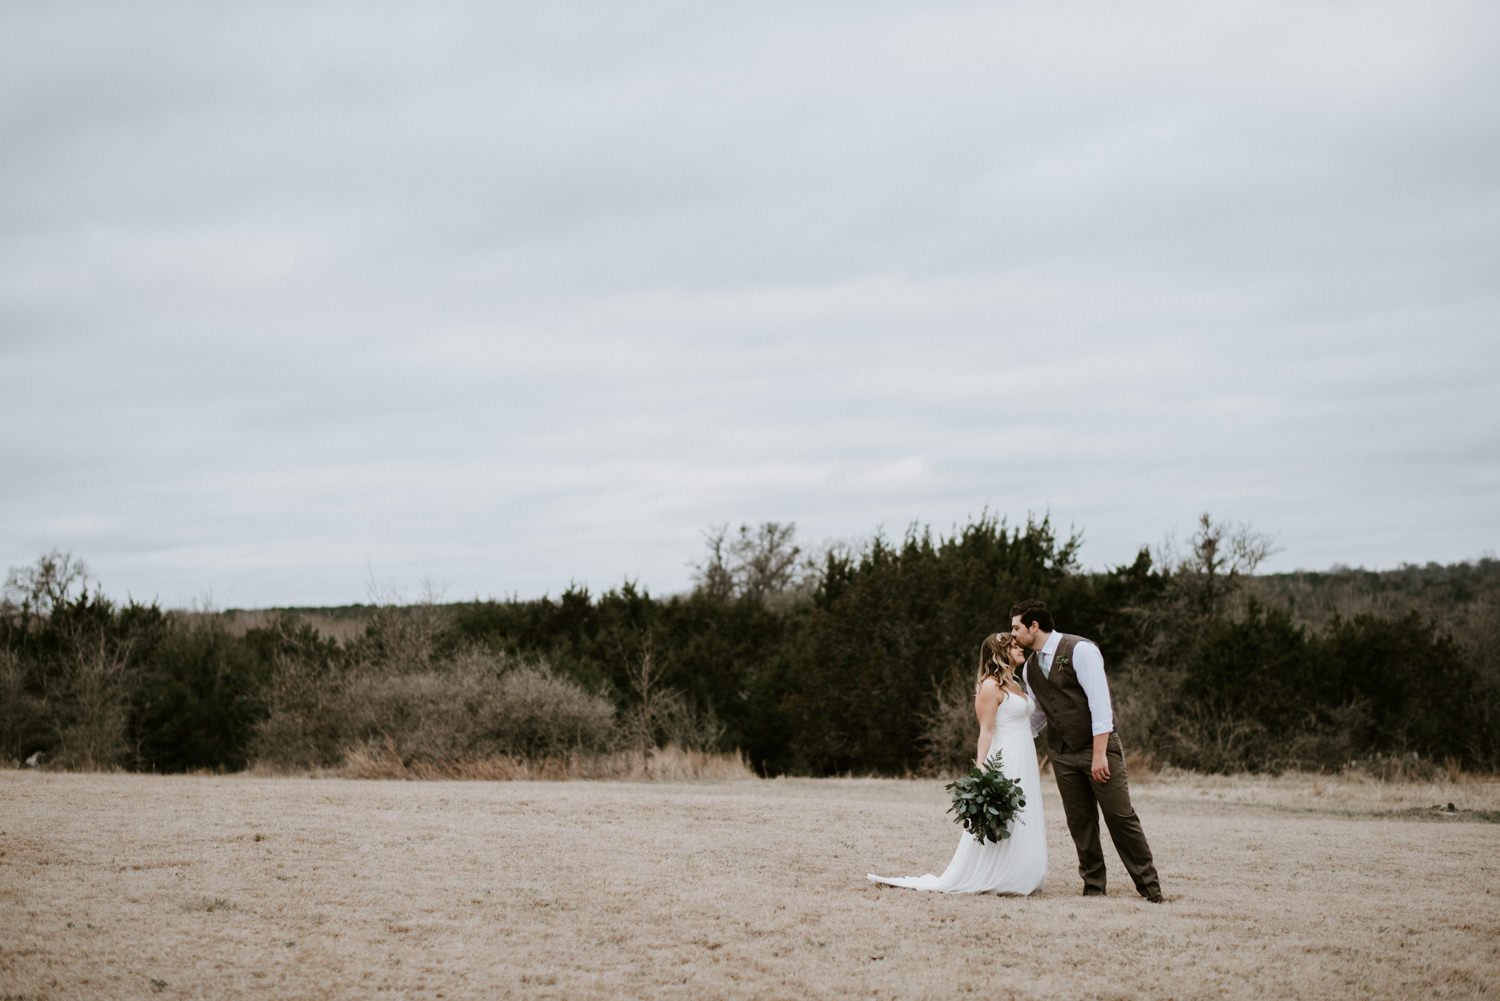 bride and groom portraits in an open field